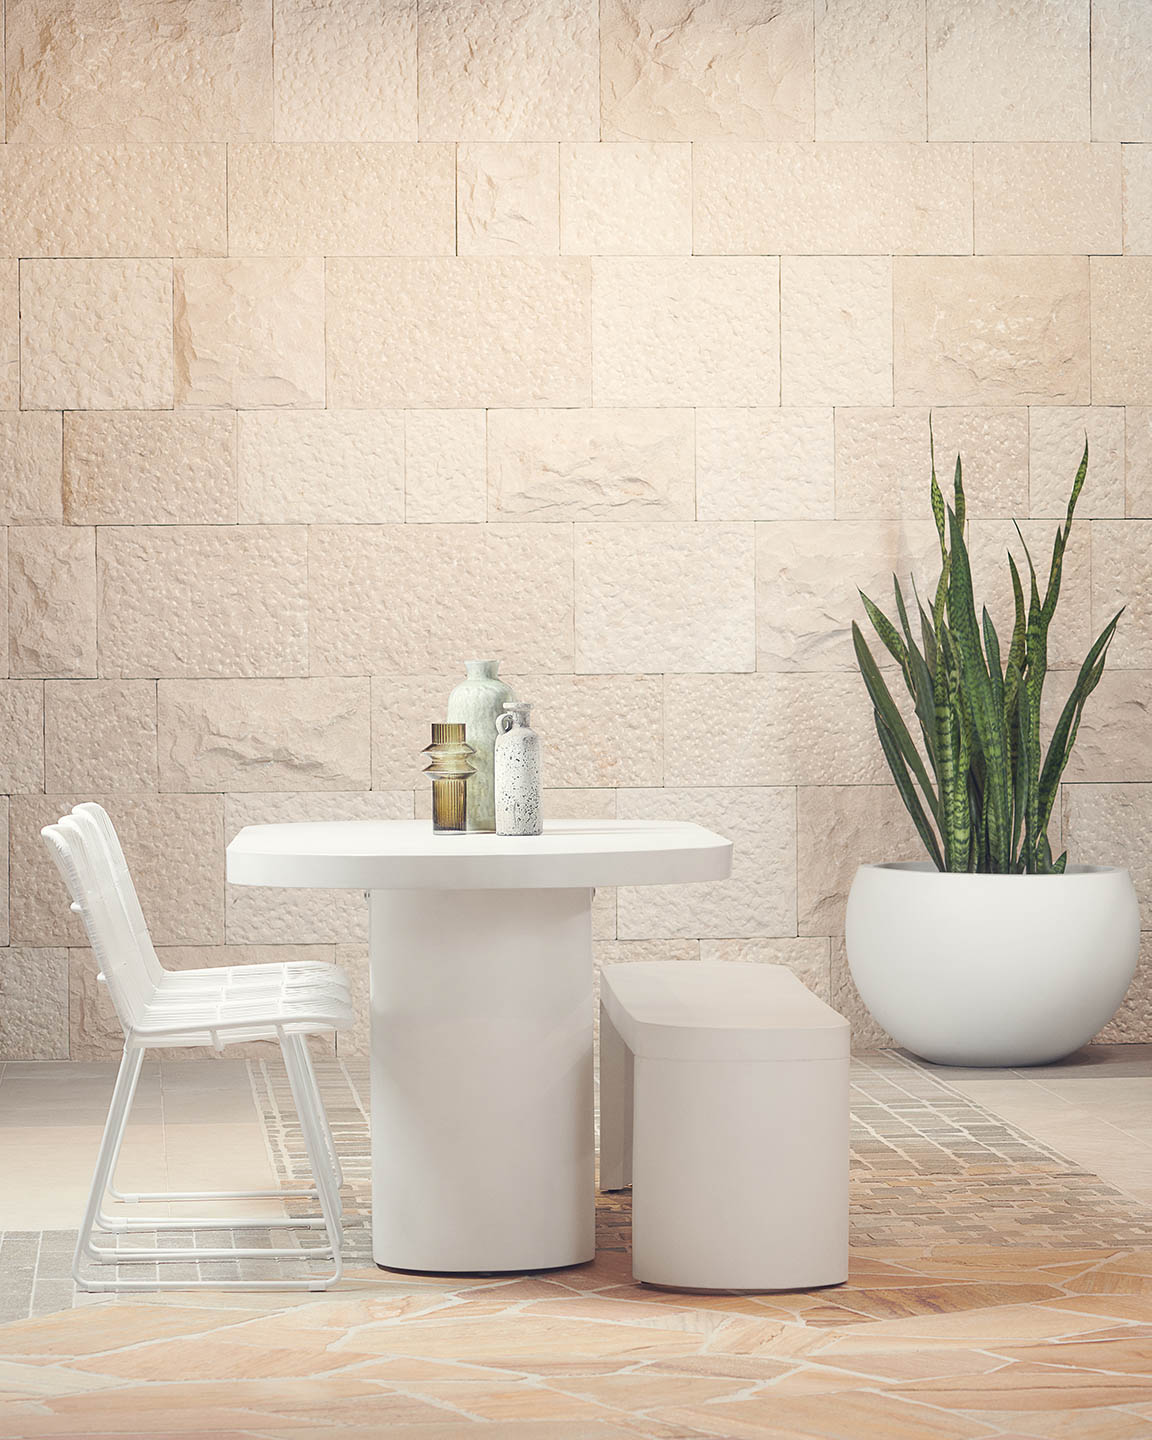 Furniture Gallery Dining-Chairs-Benches-Stools ossa-concrete-bench-03